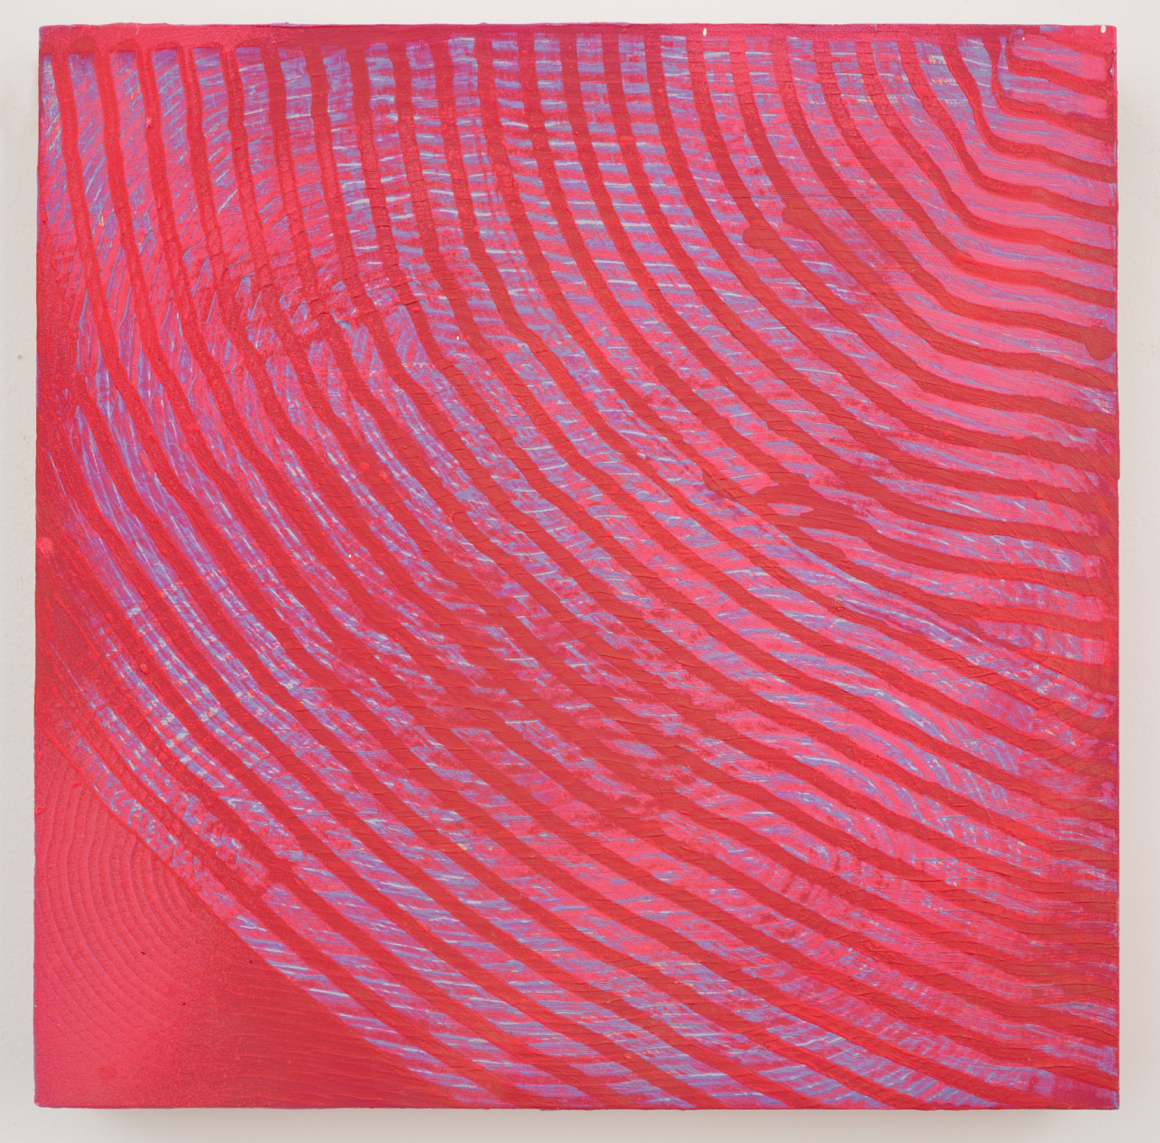 "<p><span class=""name"">Adam Bateman</span><br><em>Pink</em><span class='media'>acrylic and spray paint on panel</span>13 x 13 in  (33 x 33 cm)<br>2014<br><a class='inquire' href='mailto:info@gildargallery.com?subject=Artwork Inquiry ABAT0015&body=I am interested in finding out more about Pink by Adam Bateman'>Inquire</a></p>"